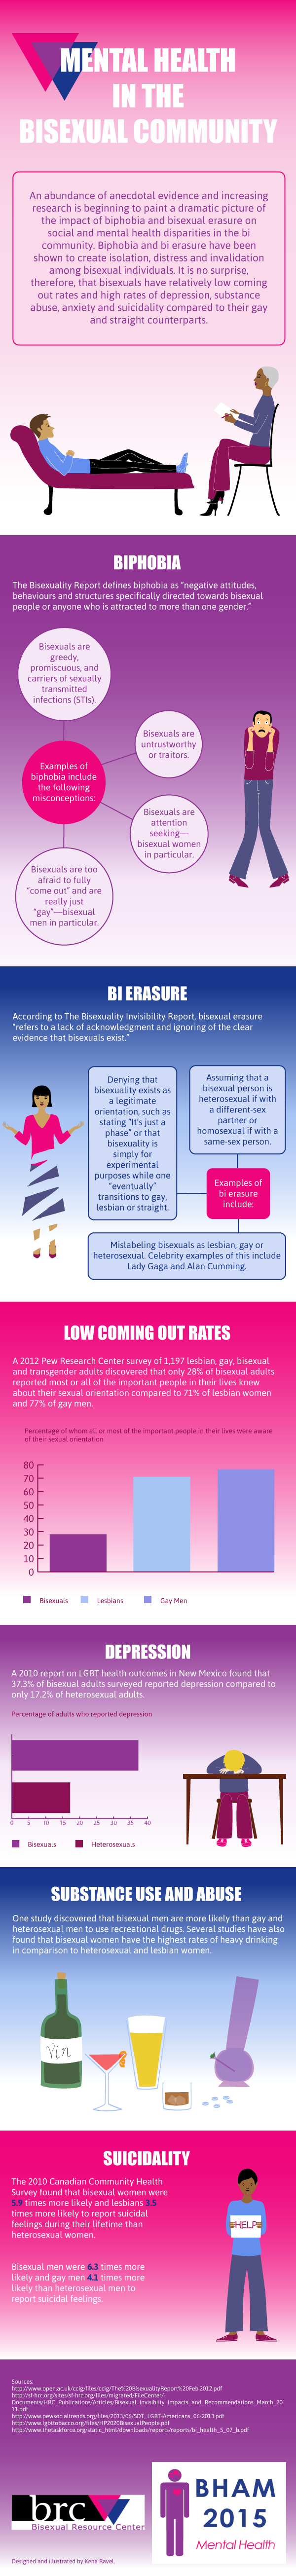 Mental-Health-in-the-Bisexual-Community_infographic